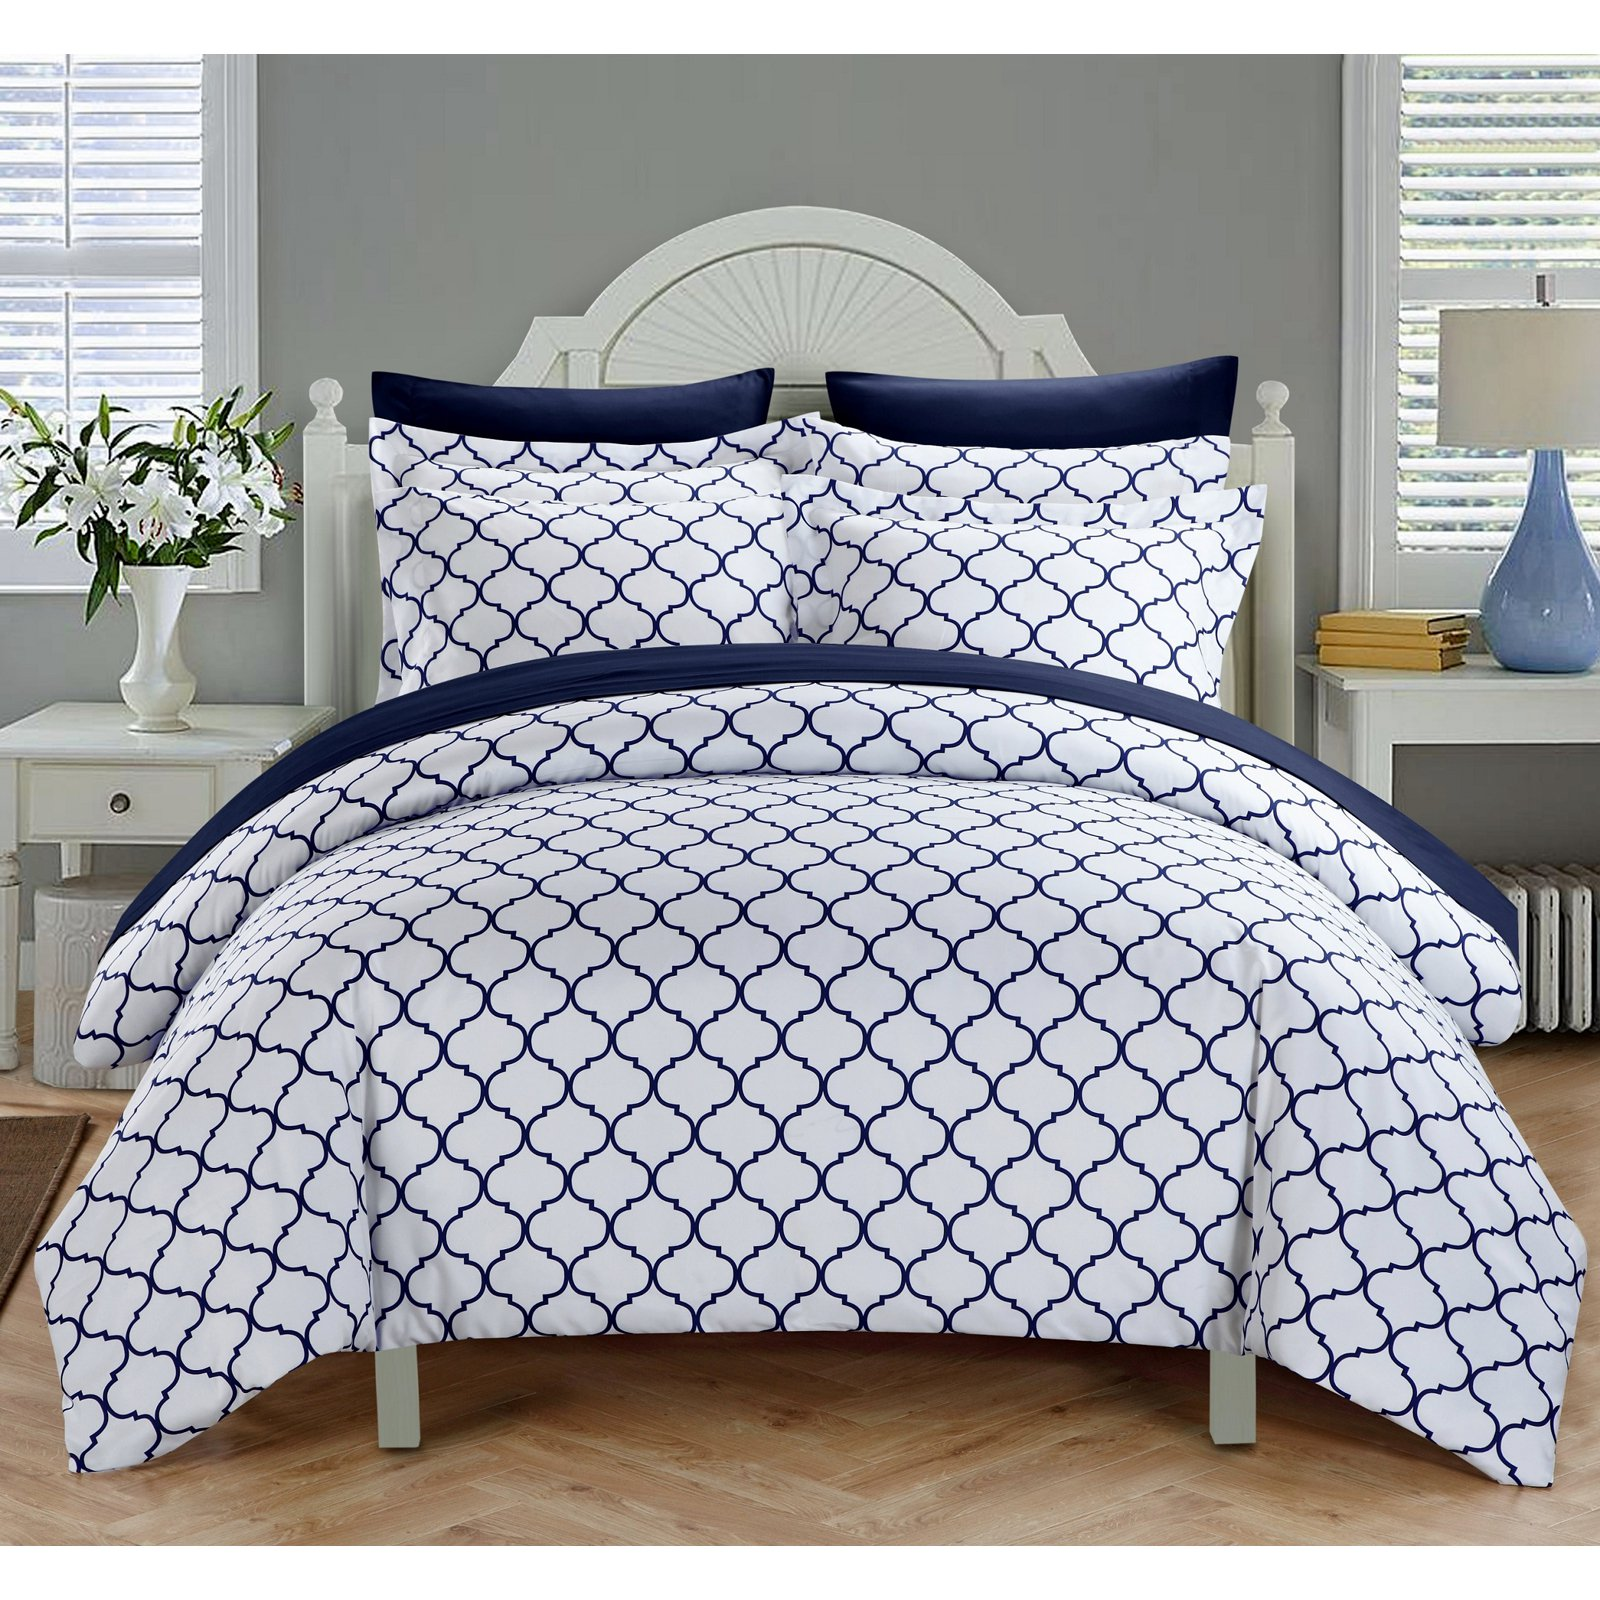 Chic Home Finlay 3 Piece Reversible Duvet Cover Set